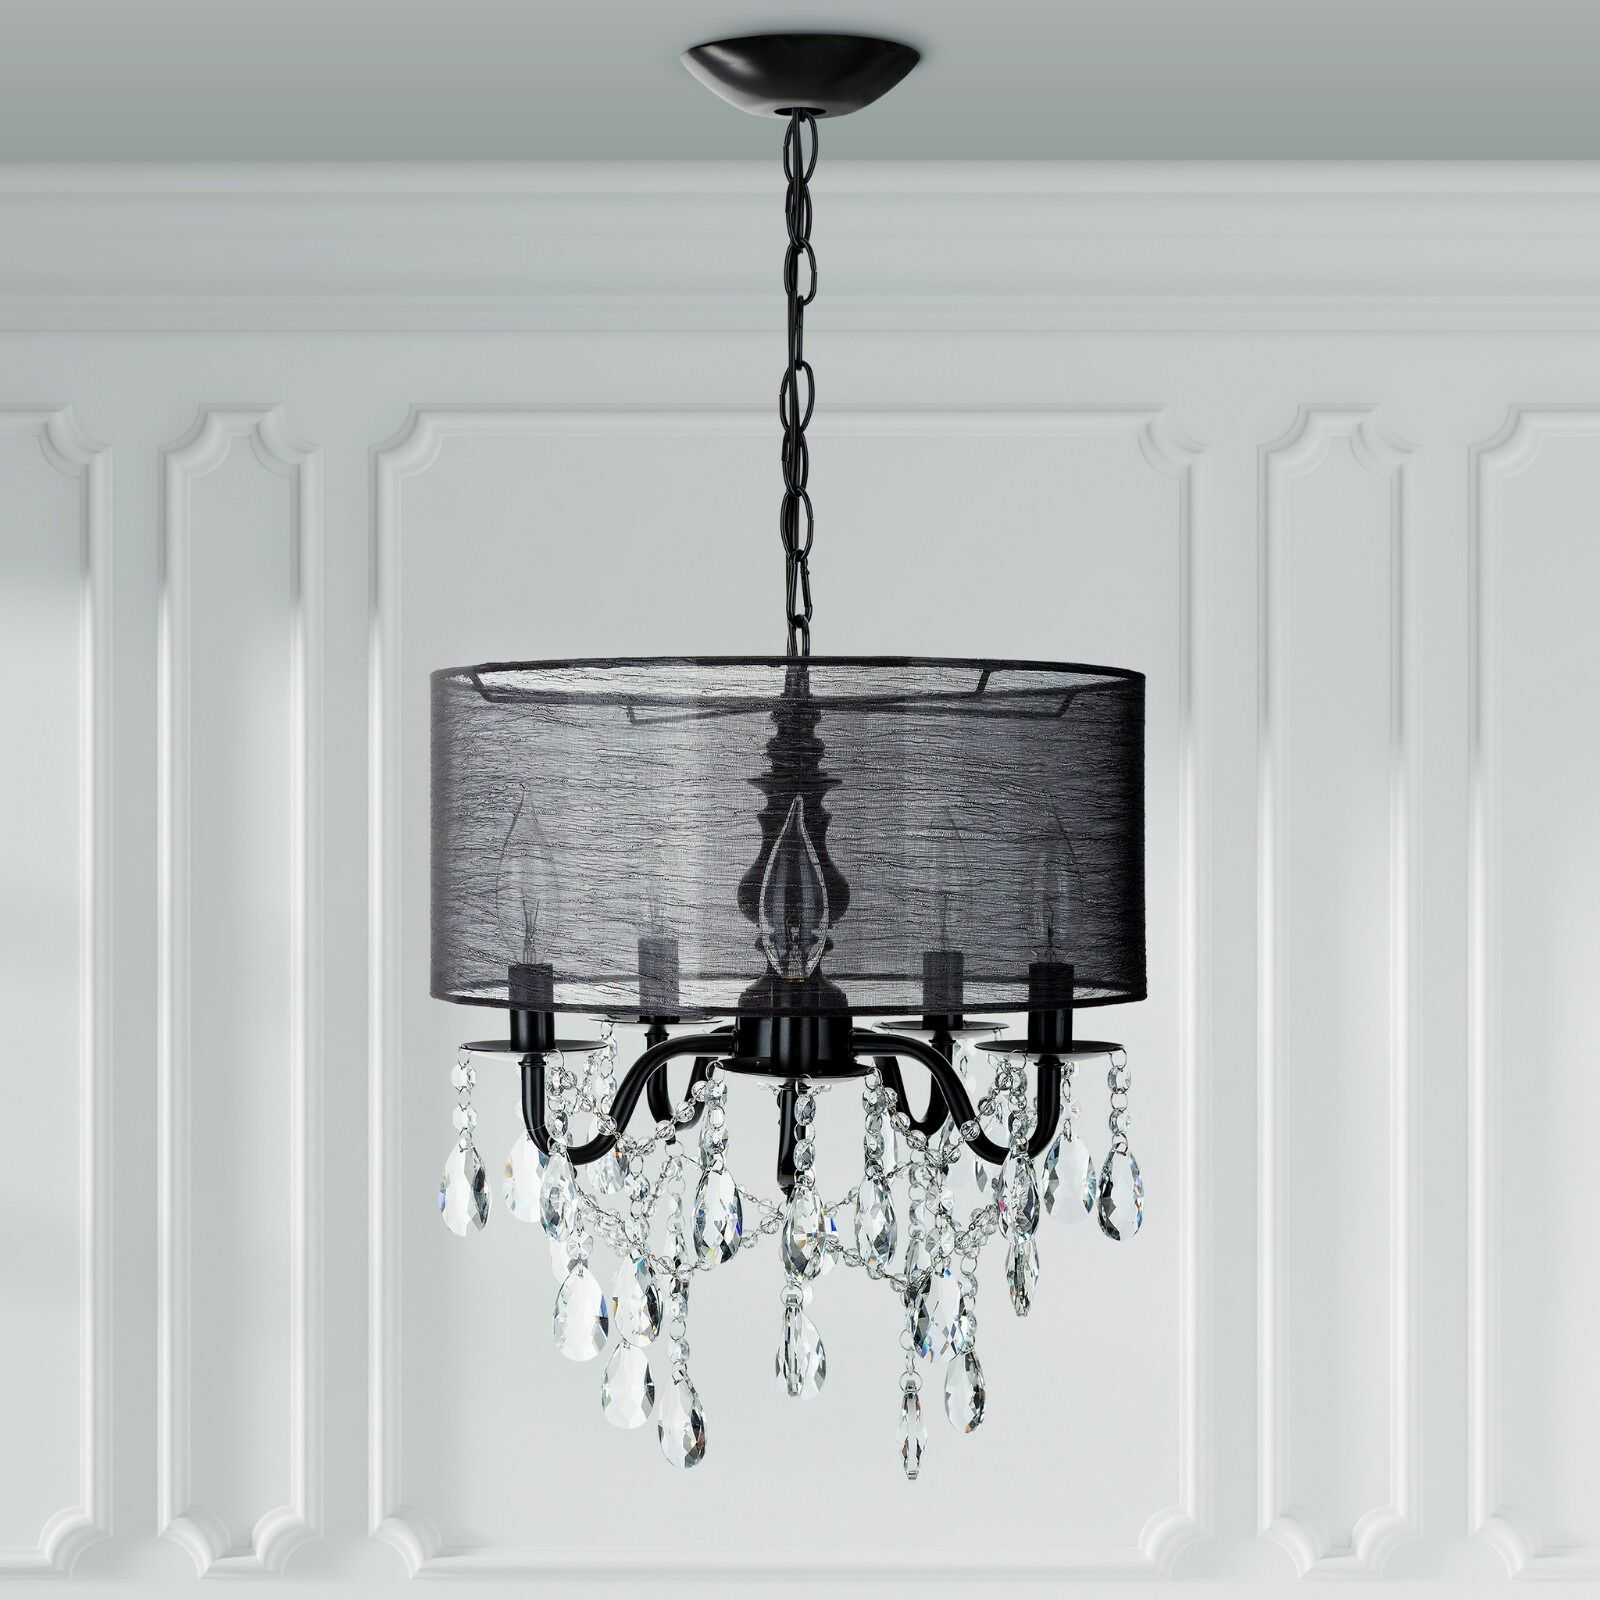 5 Light Silver Crystal Plug In Chandelier with Shade